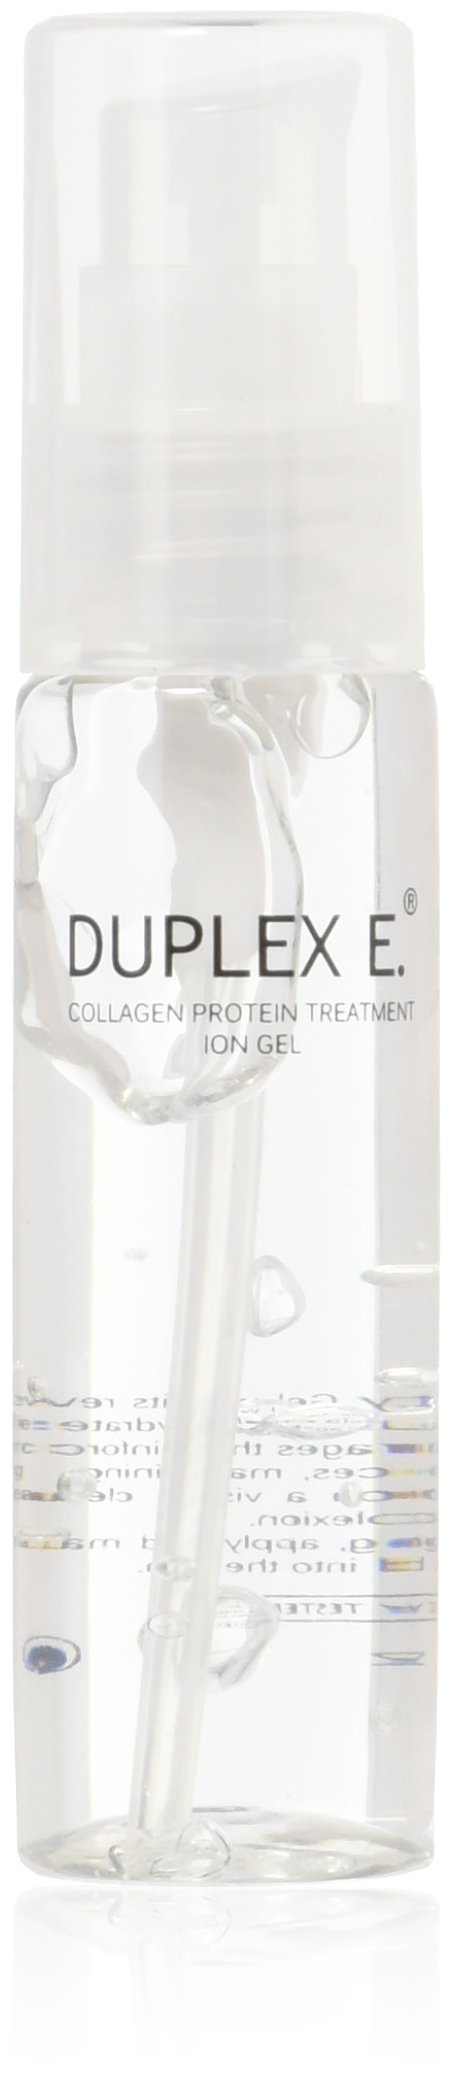 Duplex E 30ml Natural Collagen Protein Firm Facial Body Skin Care Ion Gel Treatment